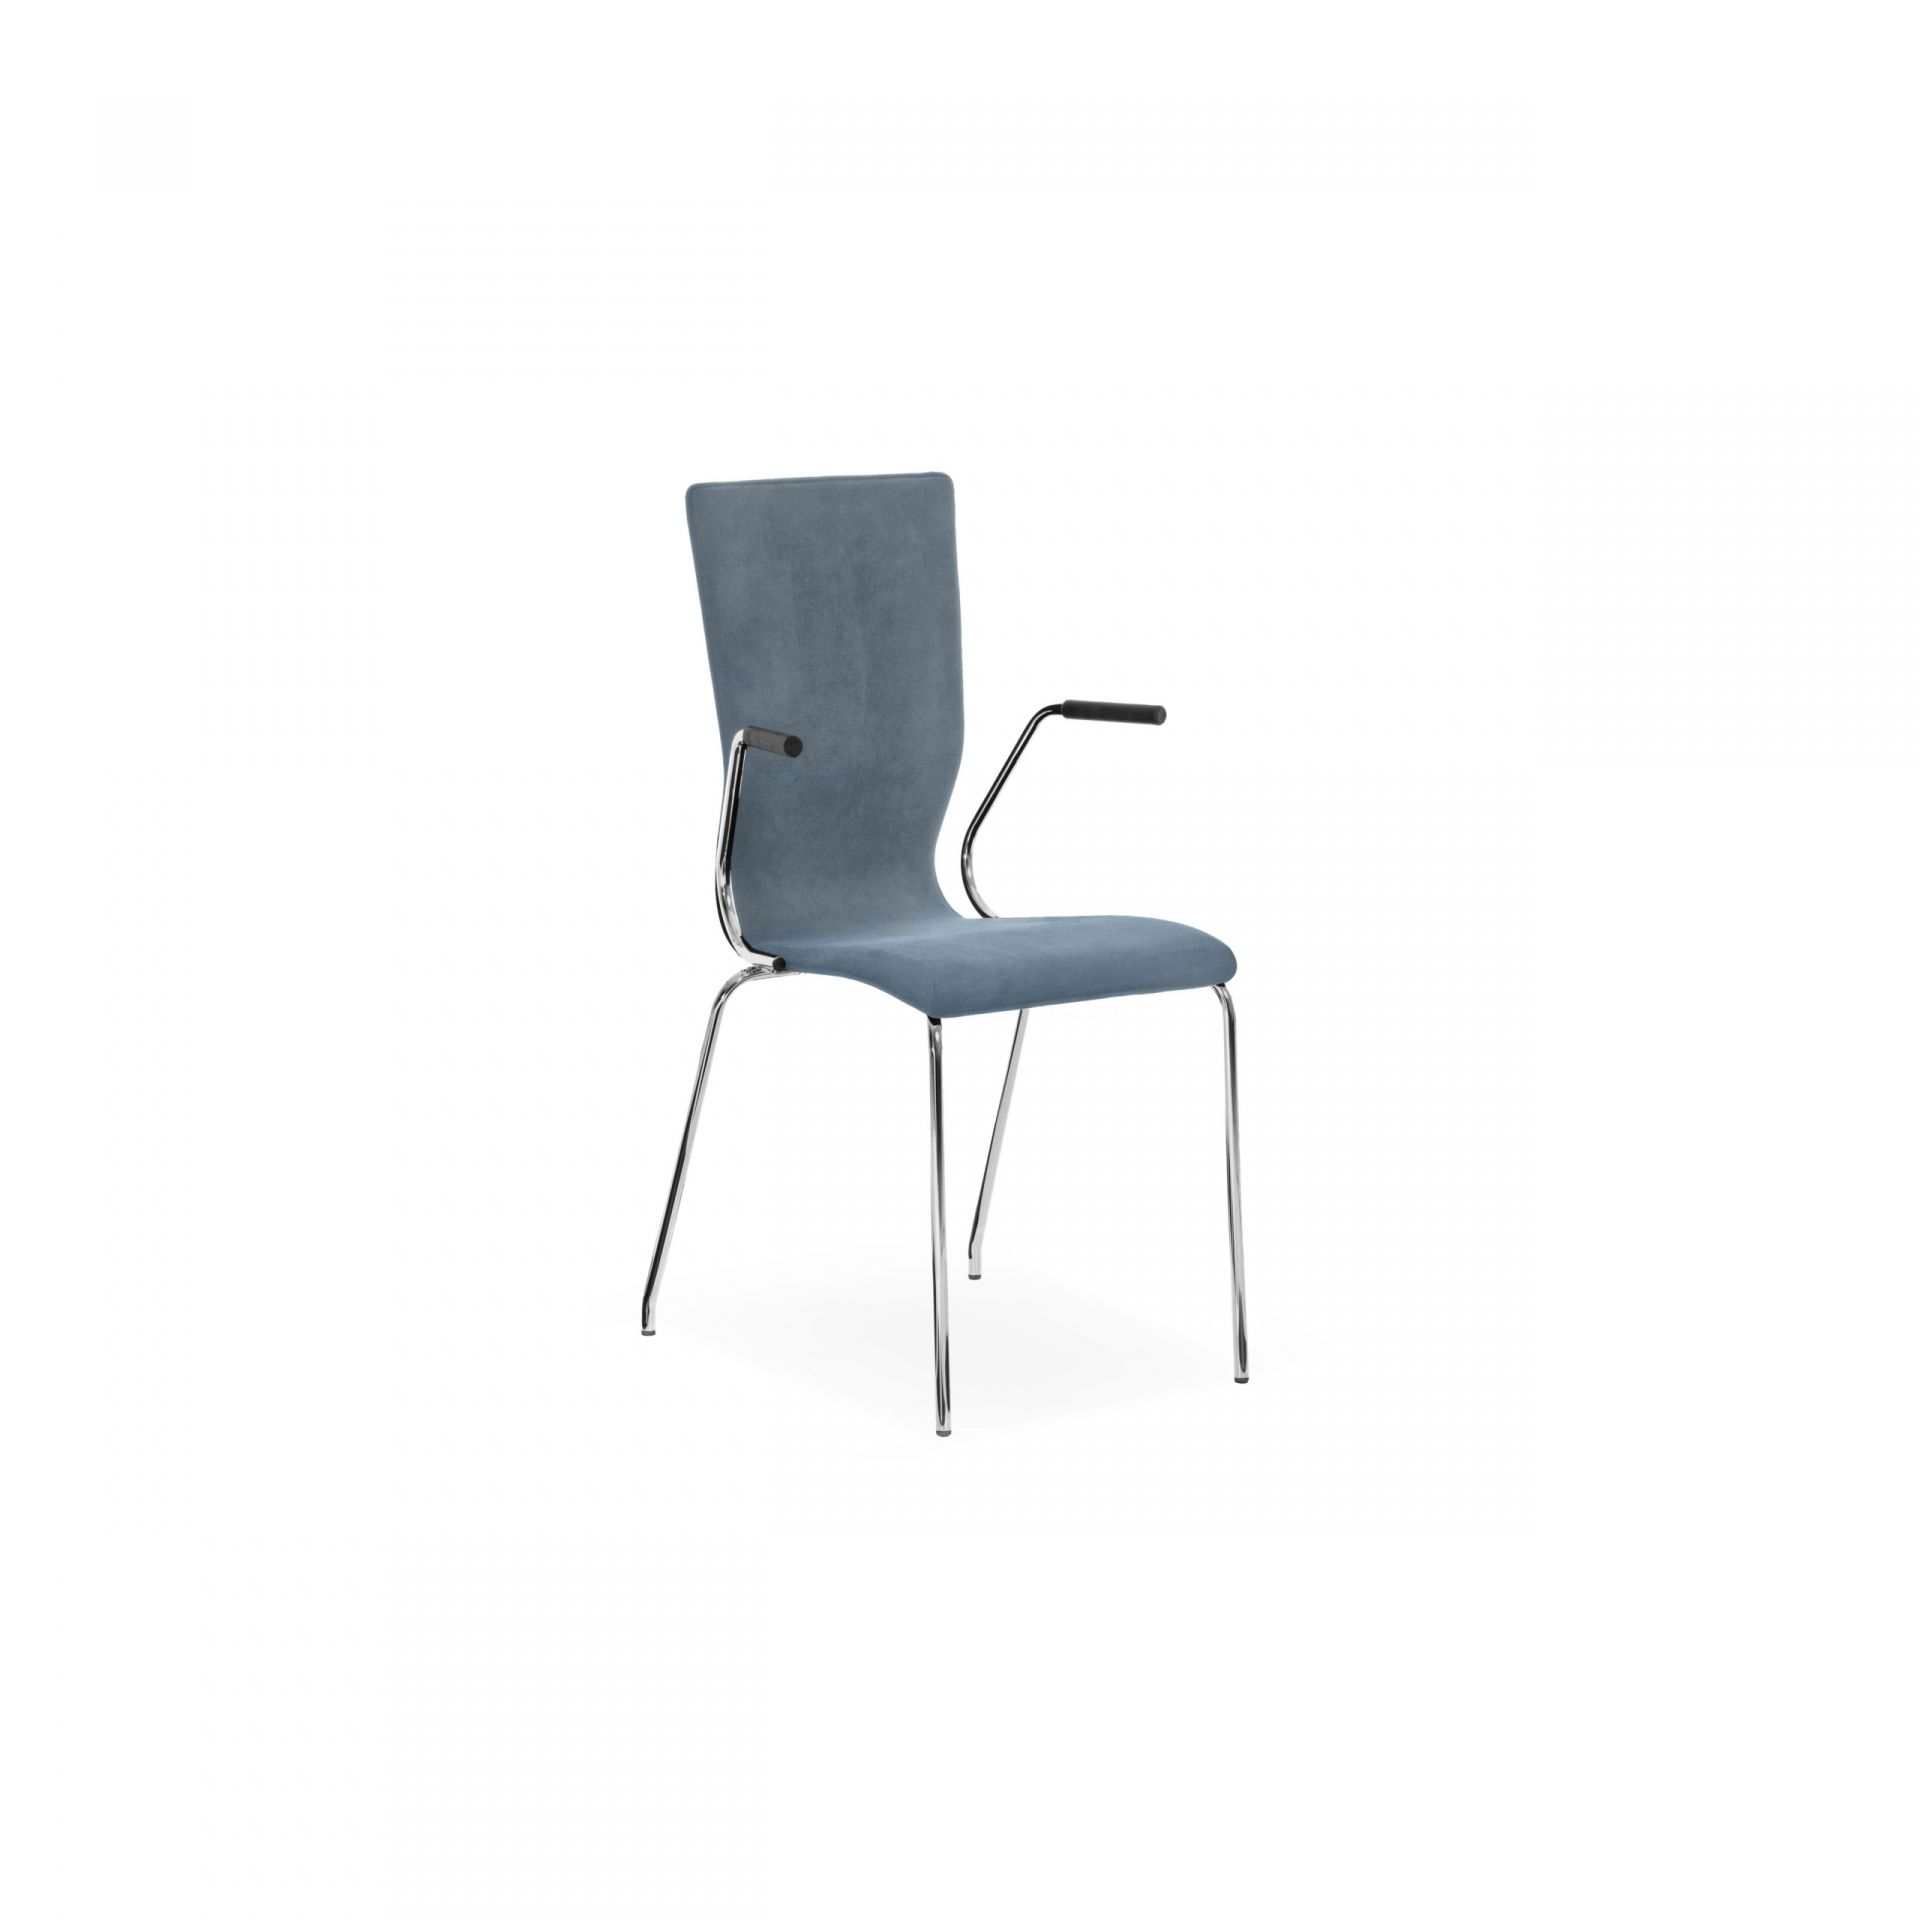 Graf Chair with metal legs product image 1